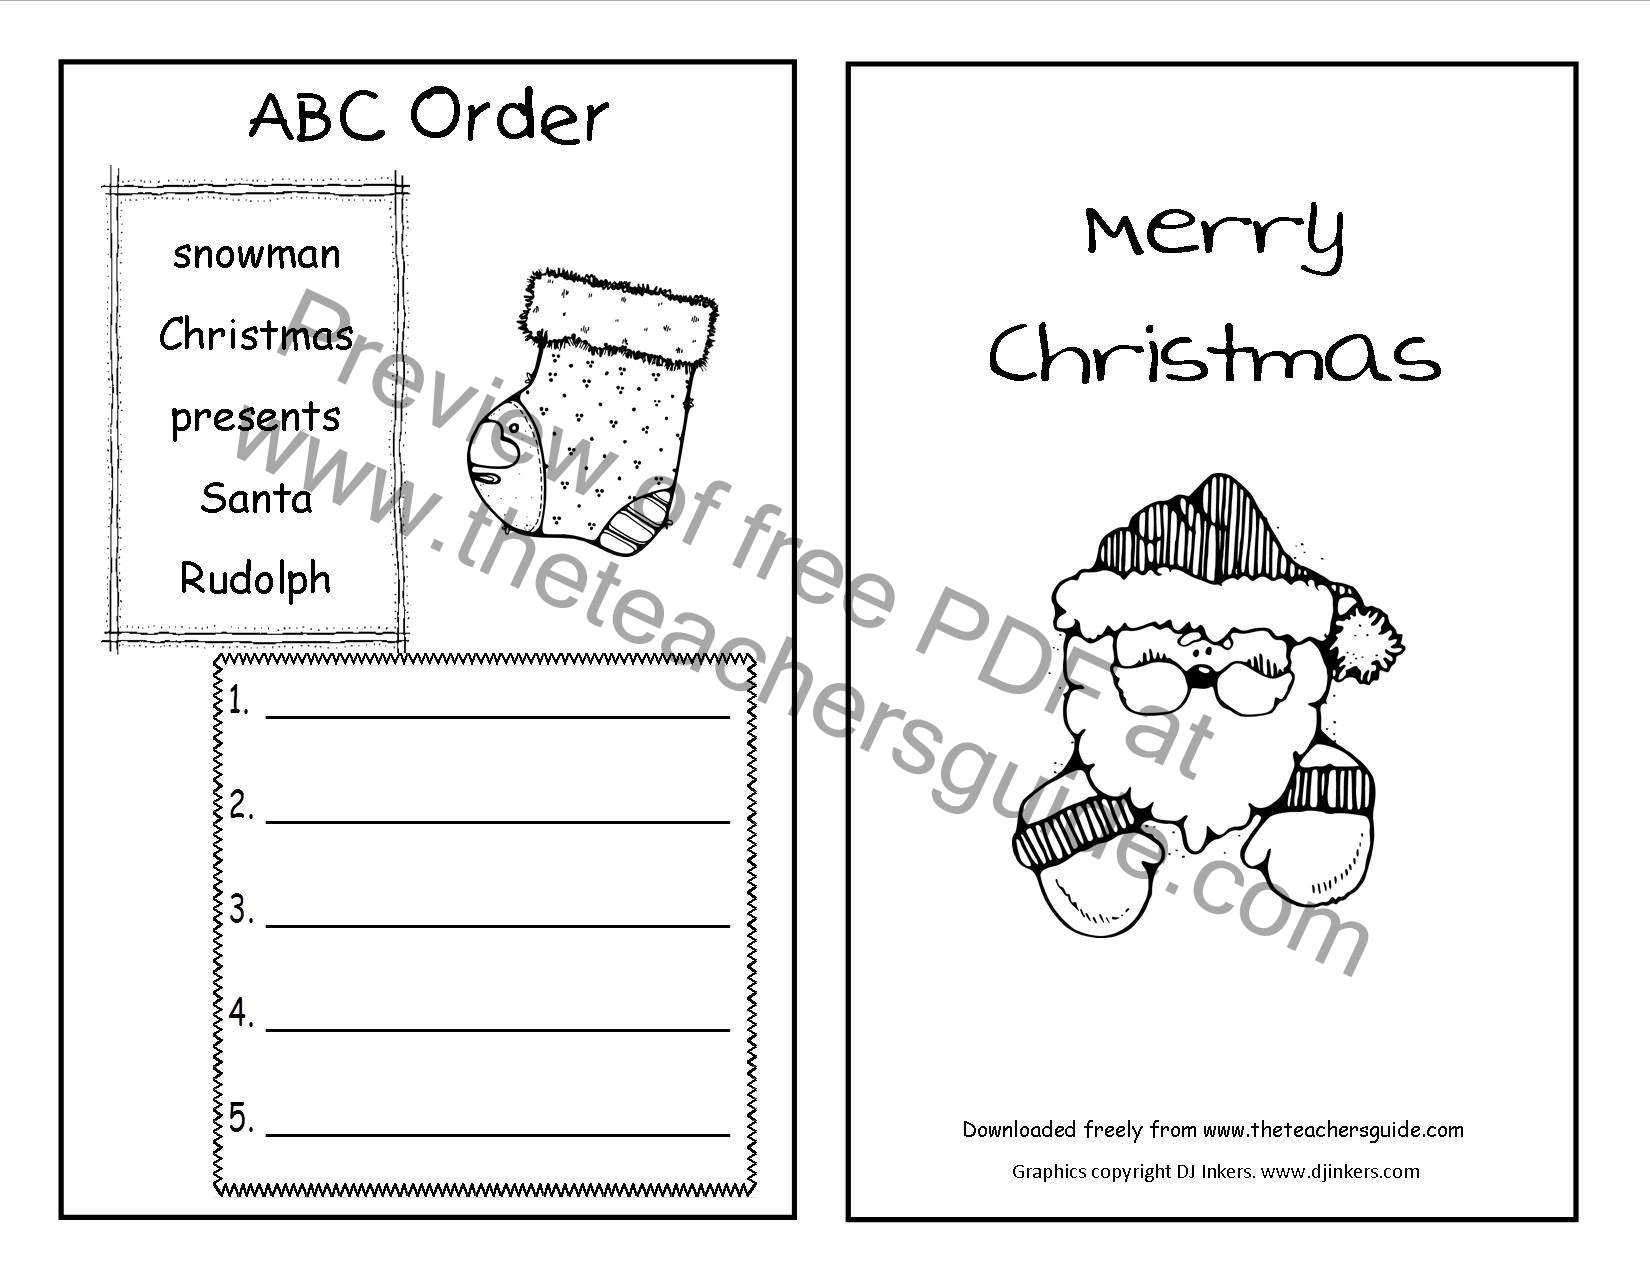 Worksheet Holiday Traditions Class